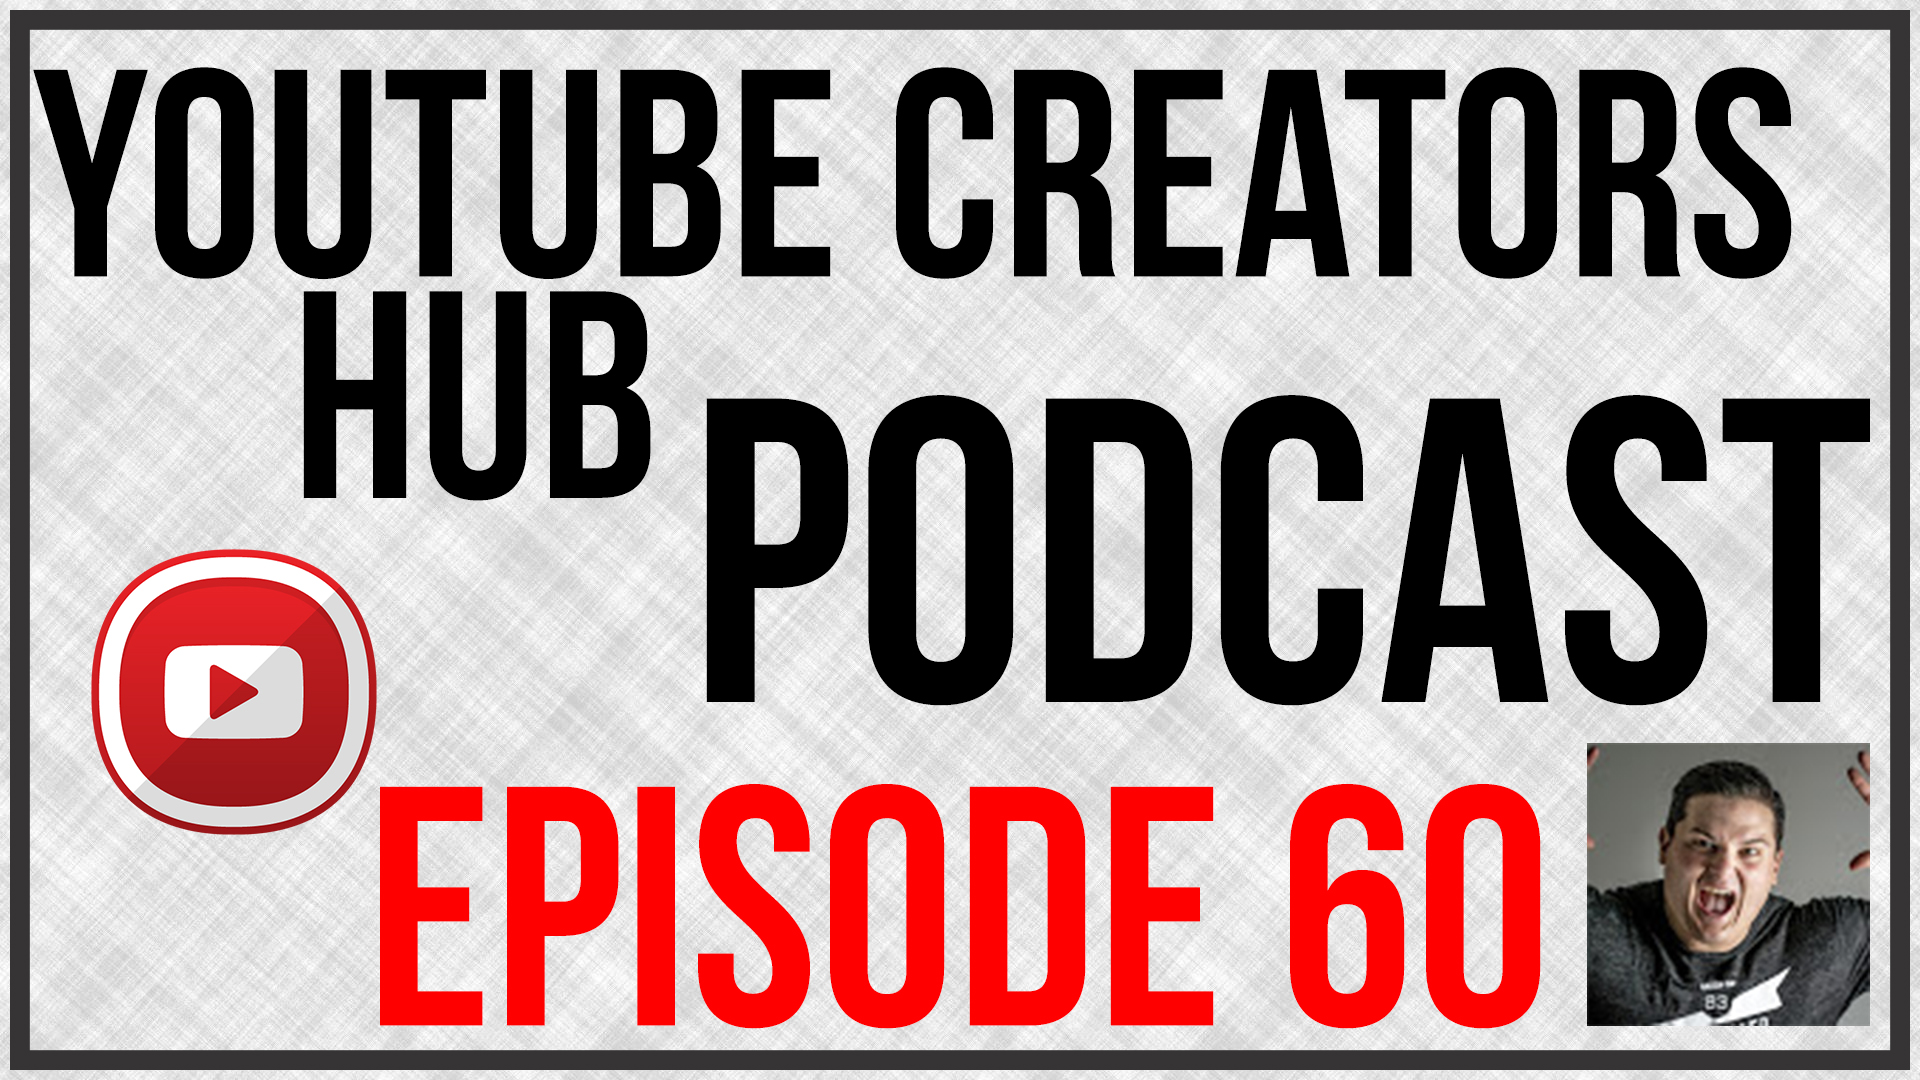 YouTube Creators Hub Podcast Episode 60